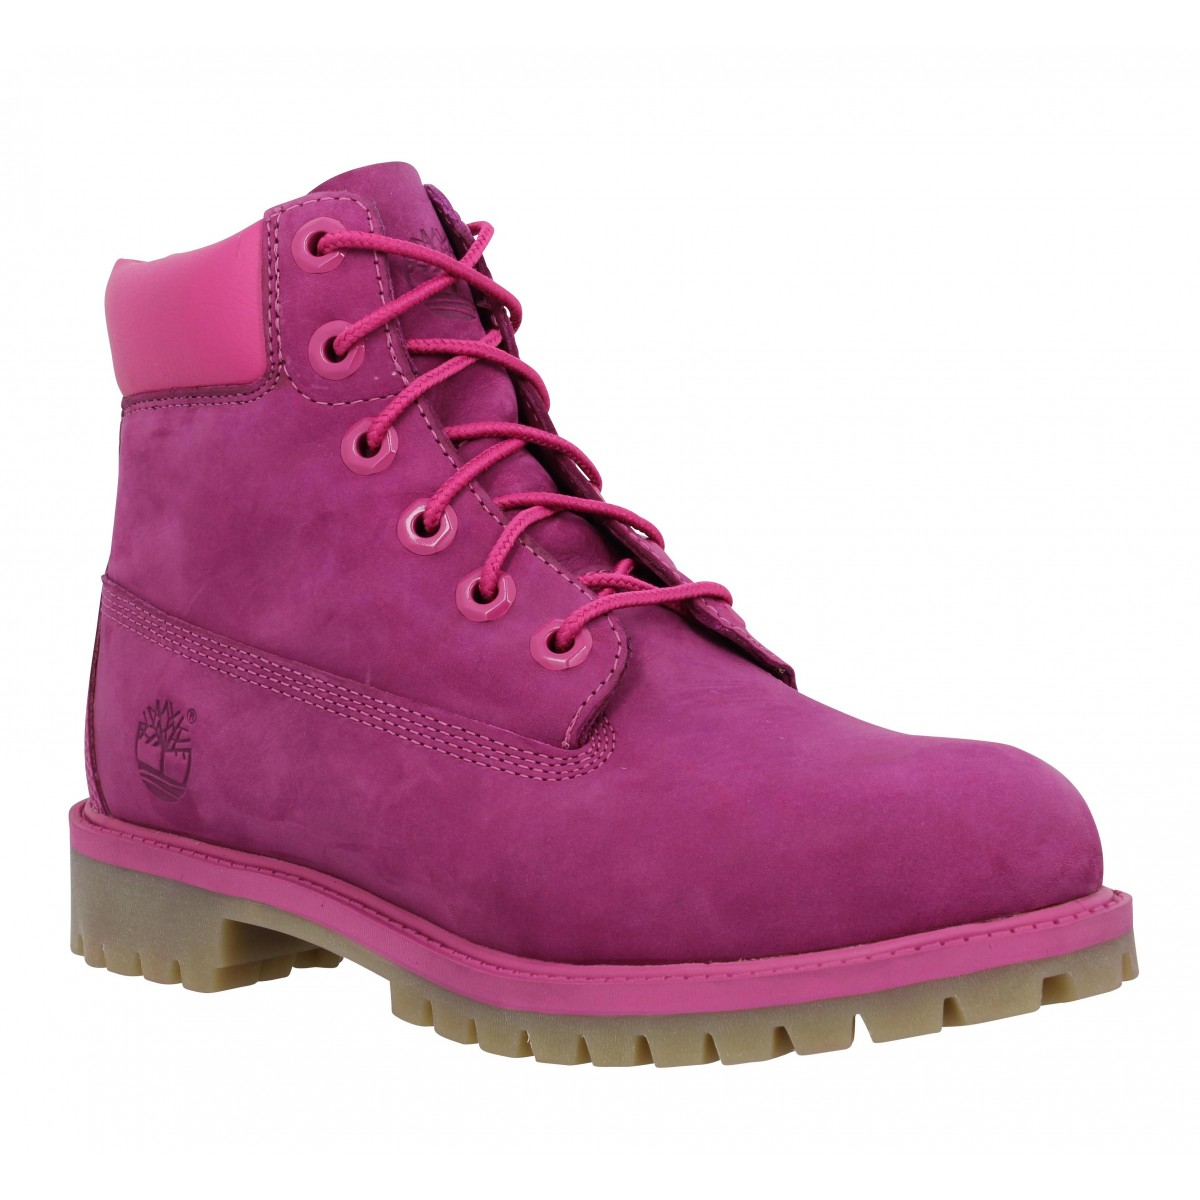 Bottines TIMBERLAND 6in Premium velours Femme Pink